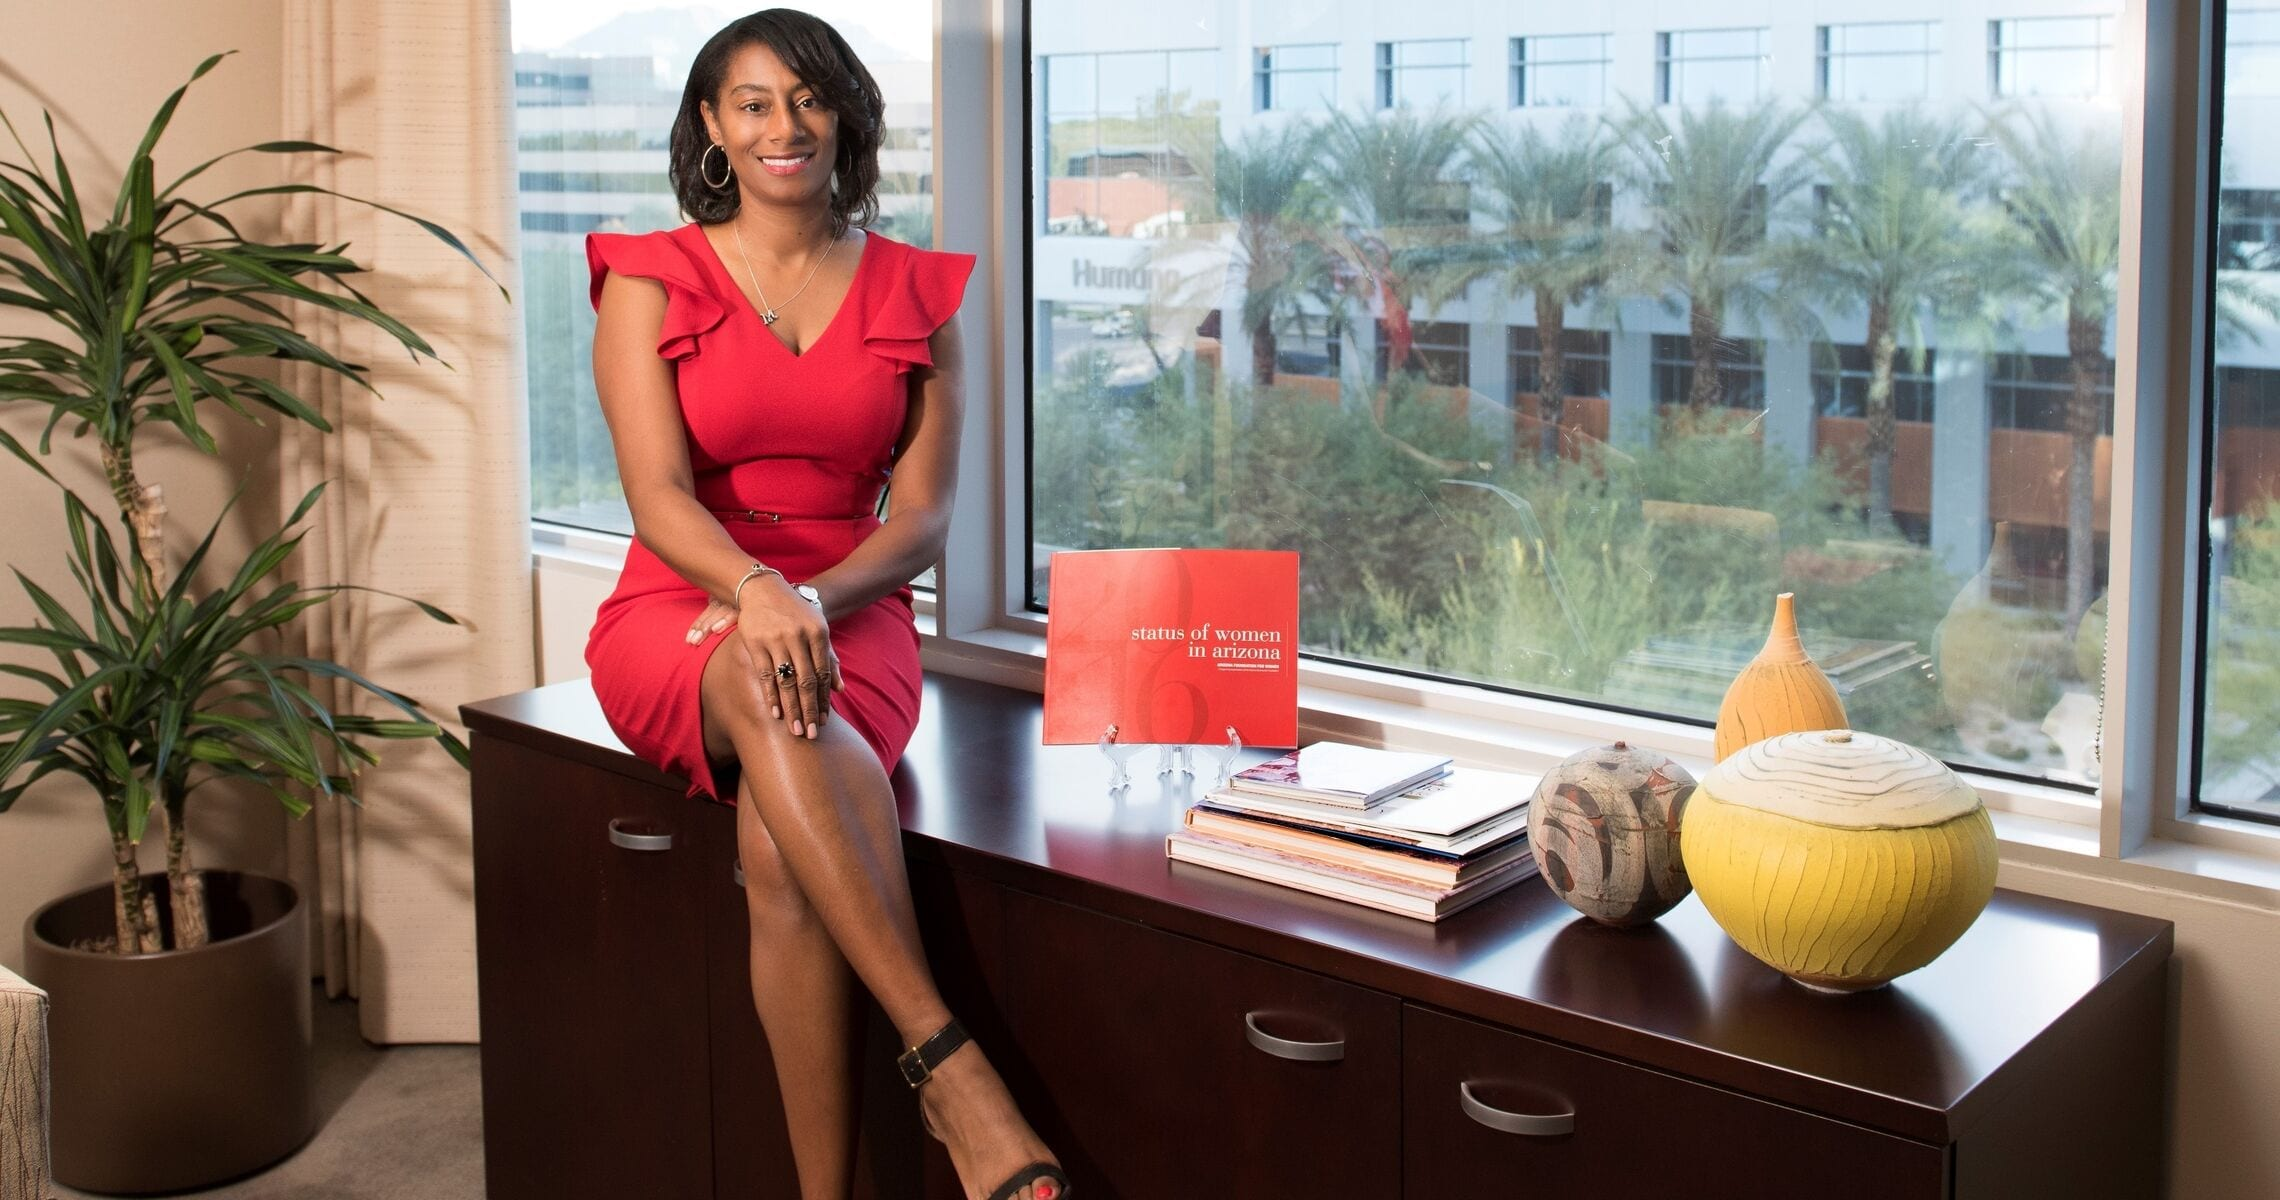 Arizona Foundation for Women - Mesha Davis